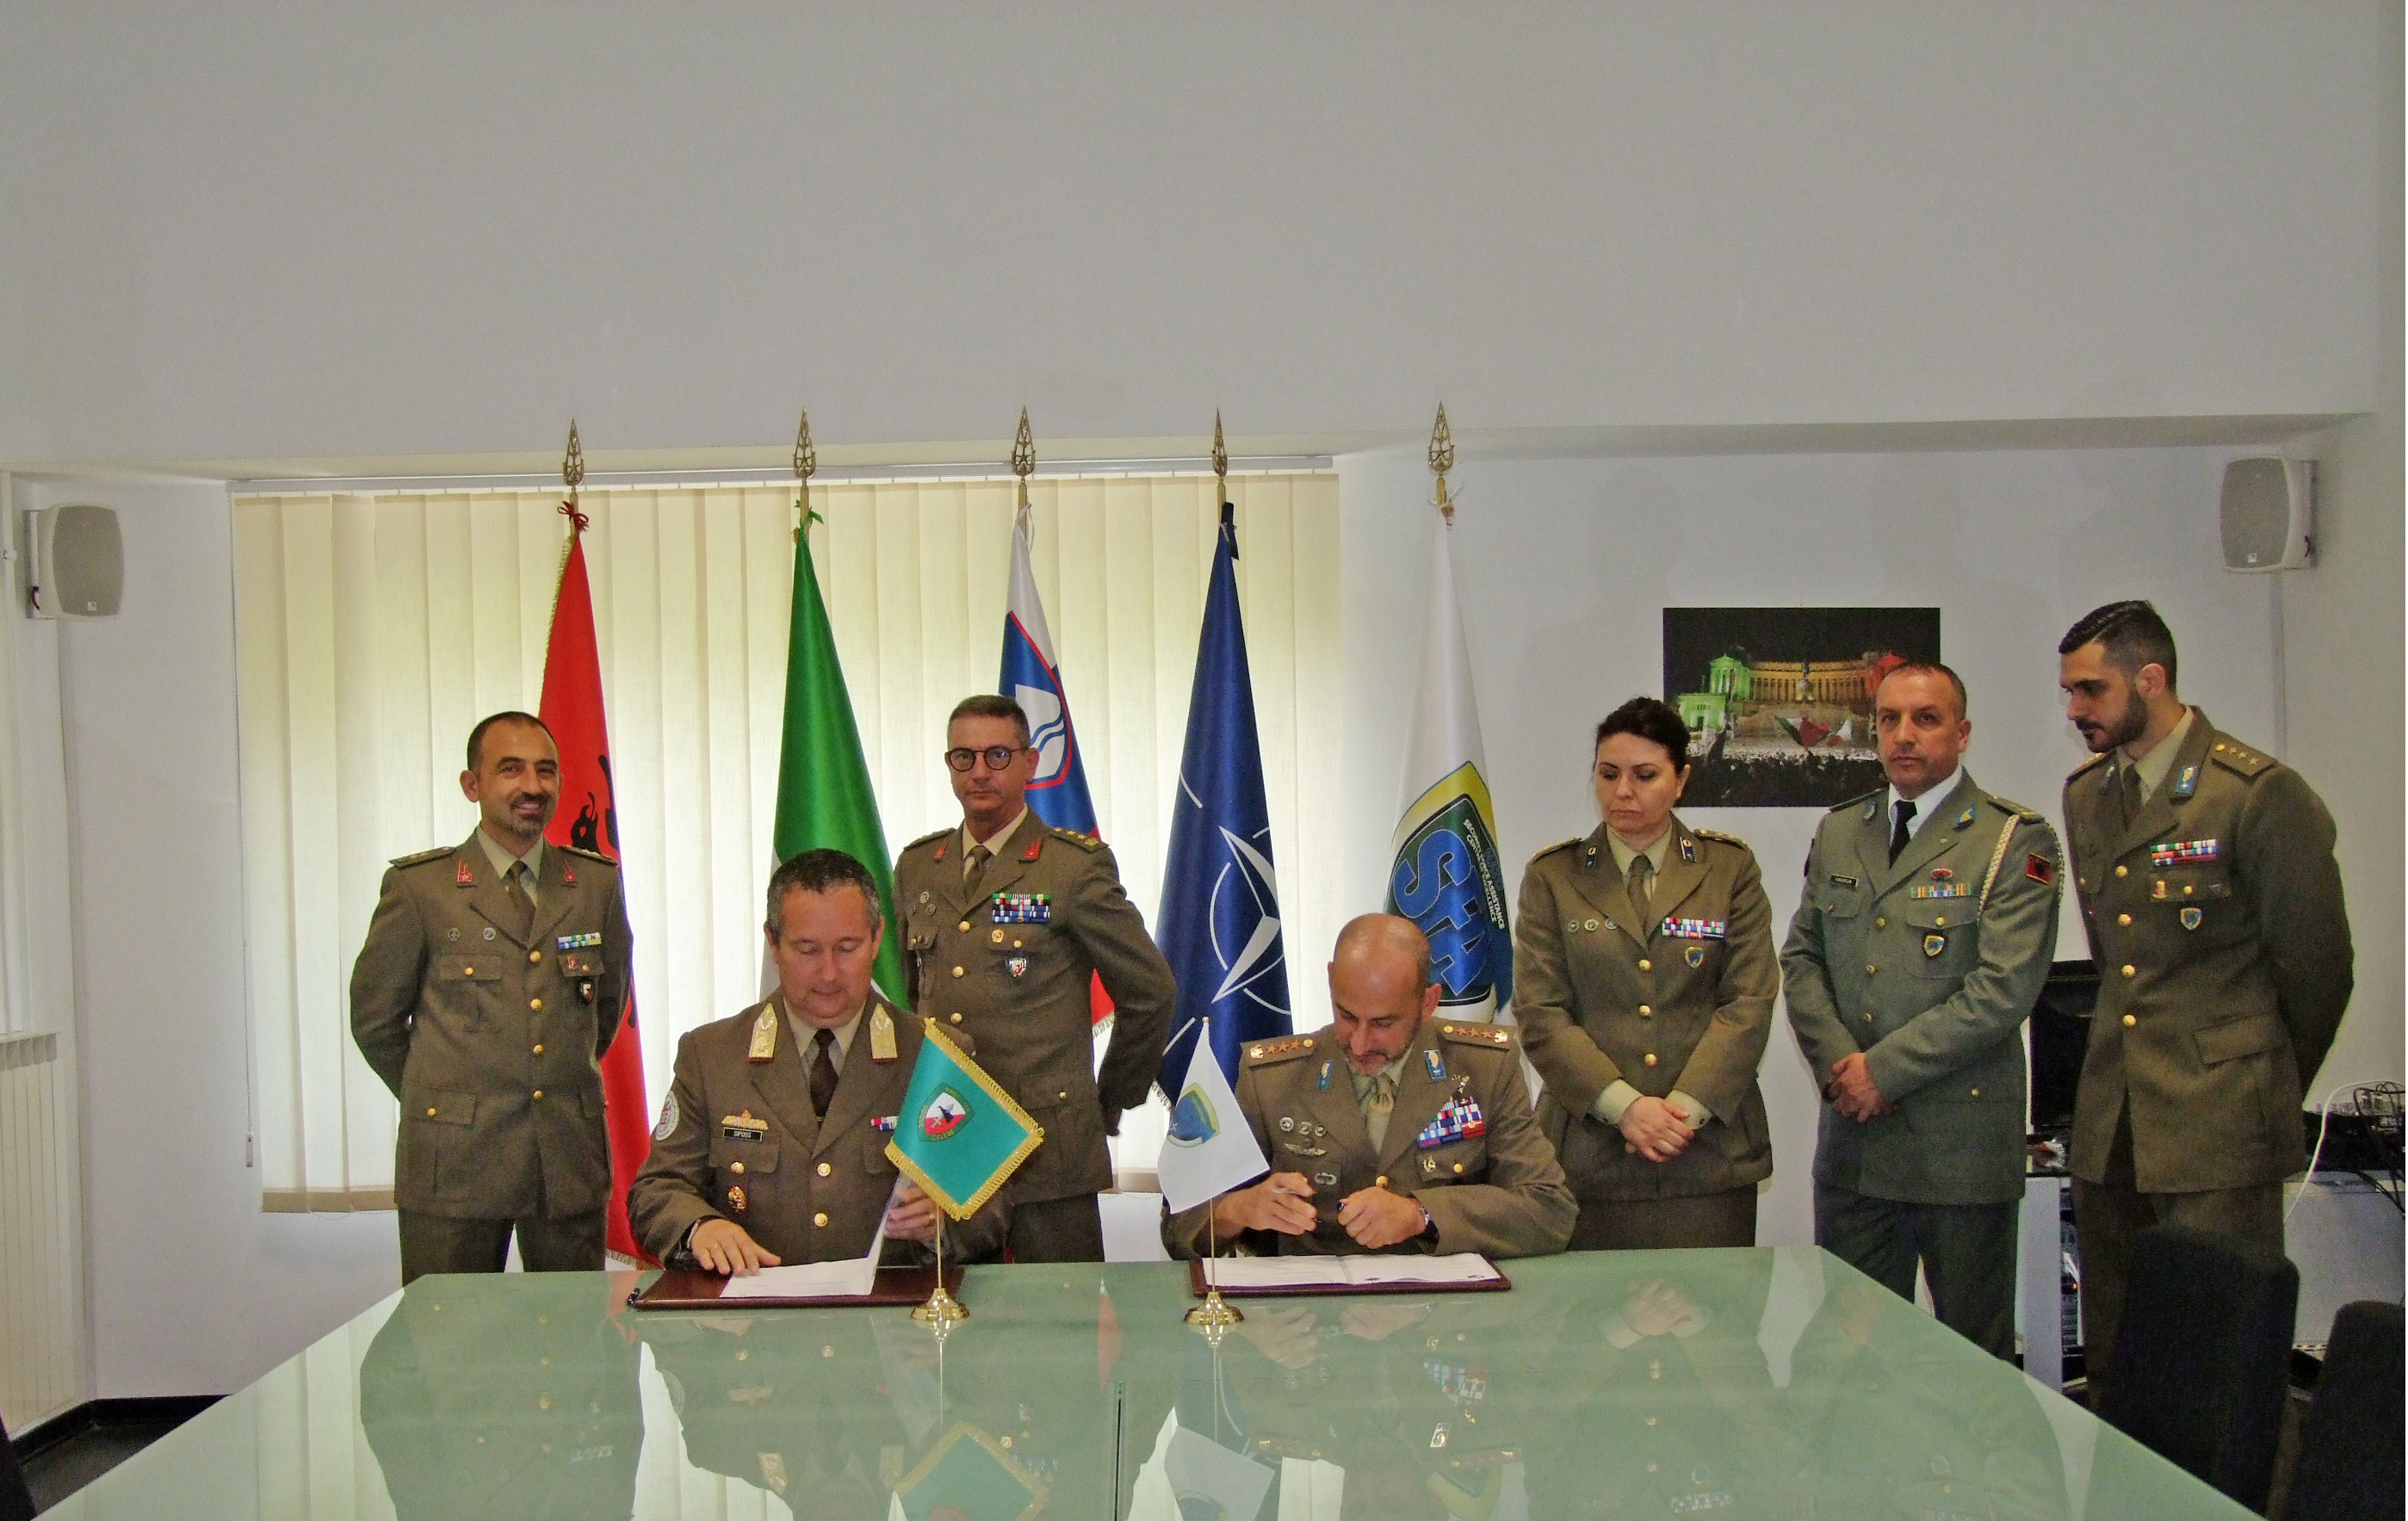 A Memorandum of Cooperation on Security Force Assistance was signed by NRDC-ITA and NATO SFA COE.